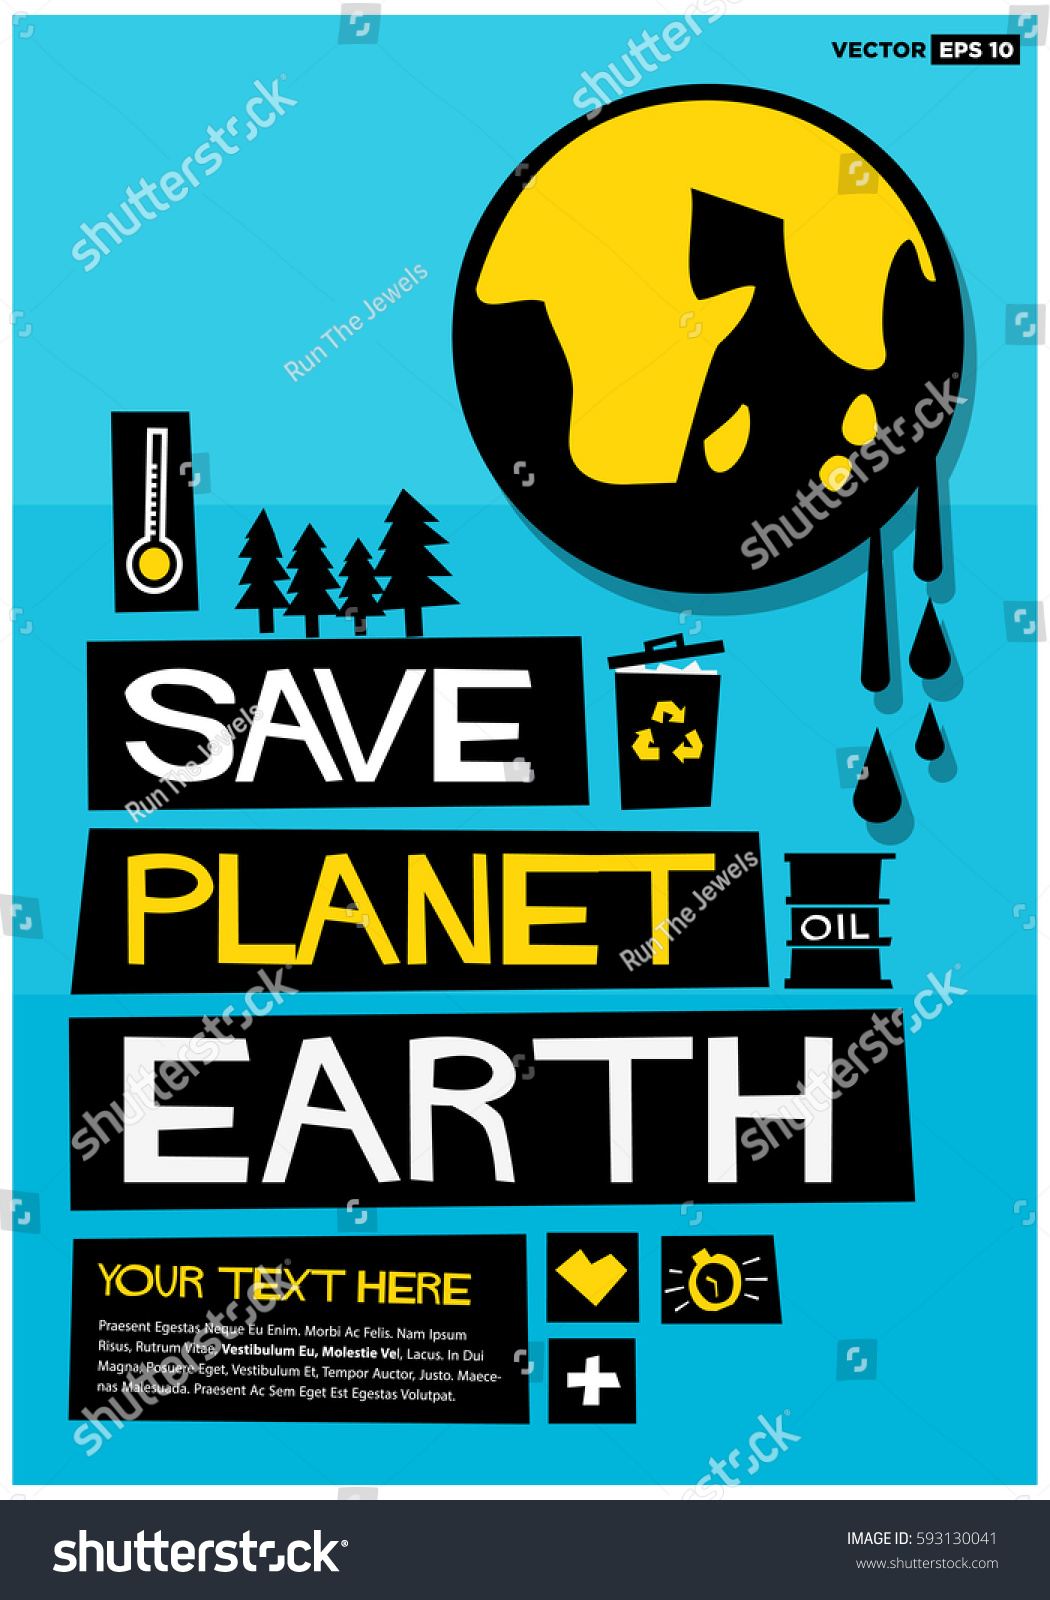 save planet See a rich collection of stock images, vectors, or photos for save the planet you can buy on shutterstock explore quality images, photos, art & more.